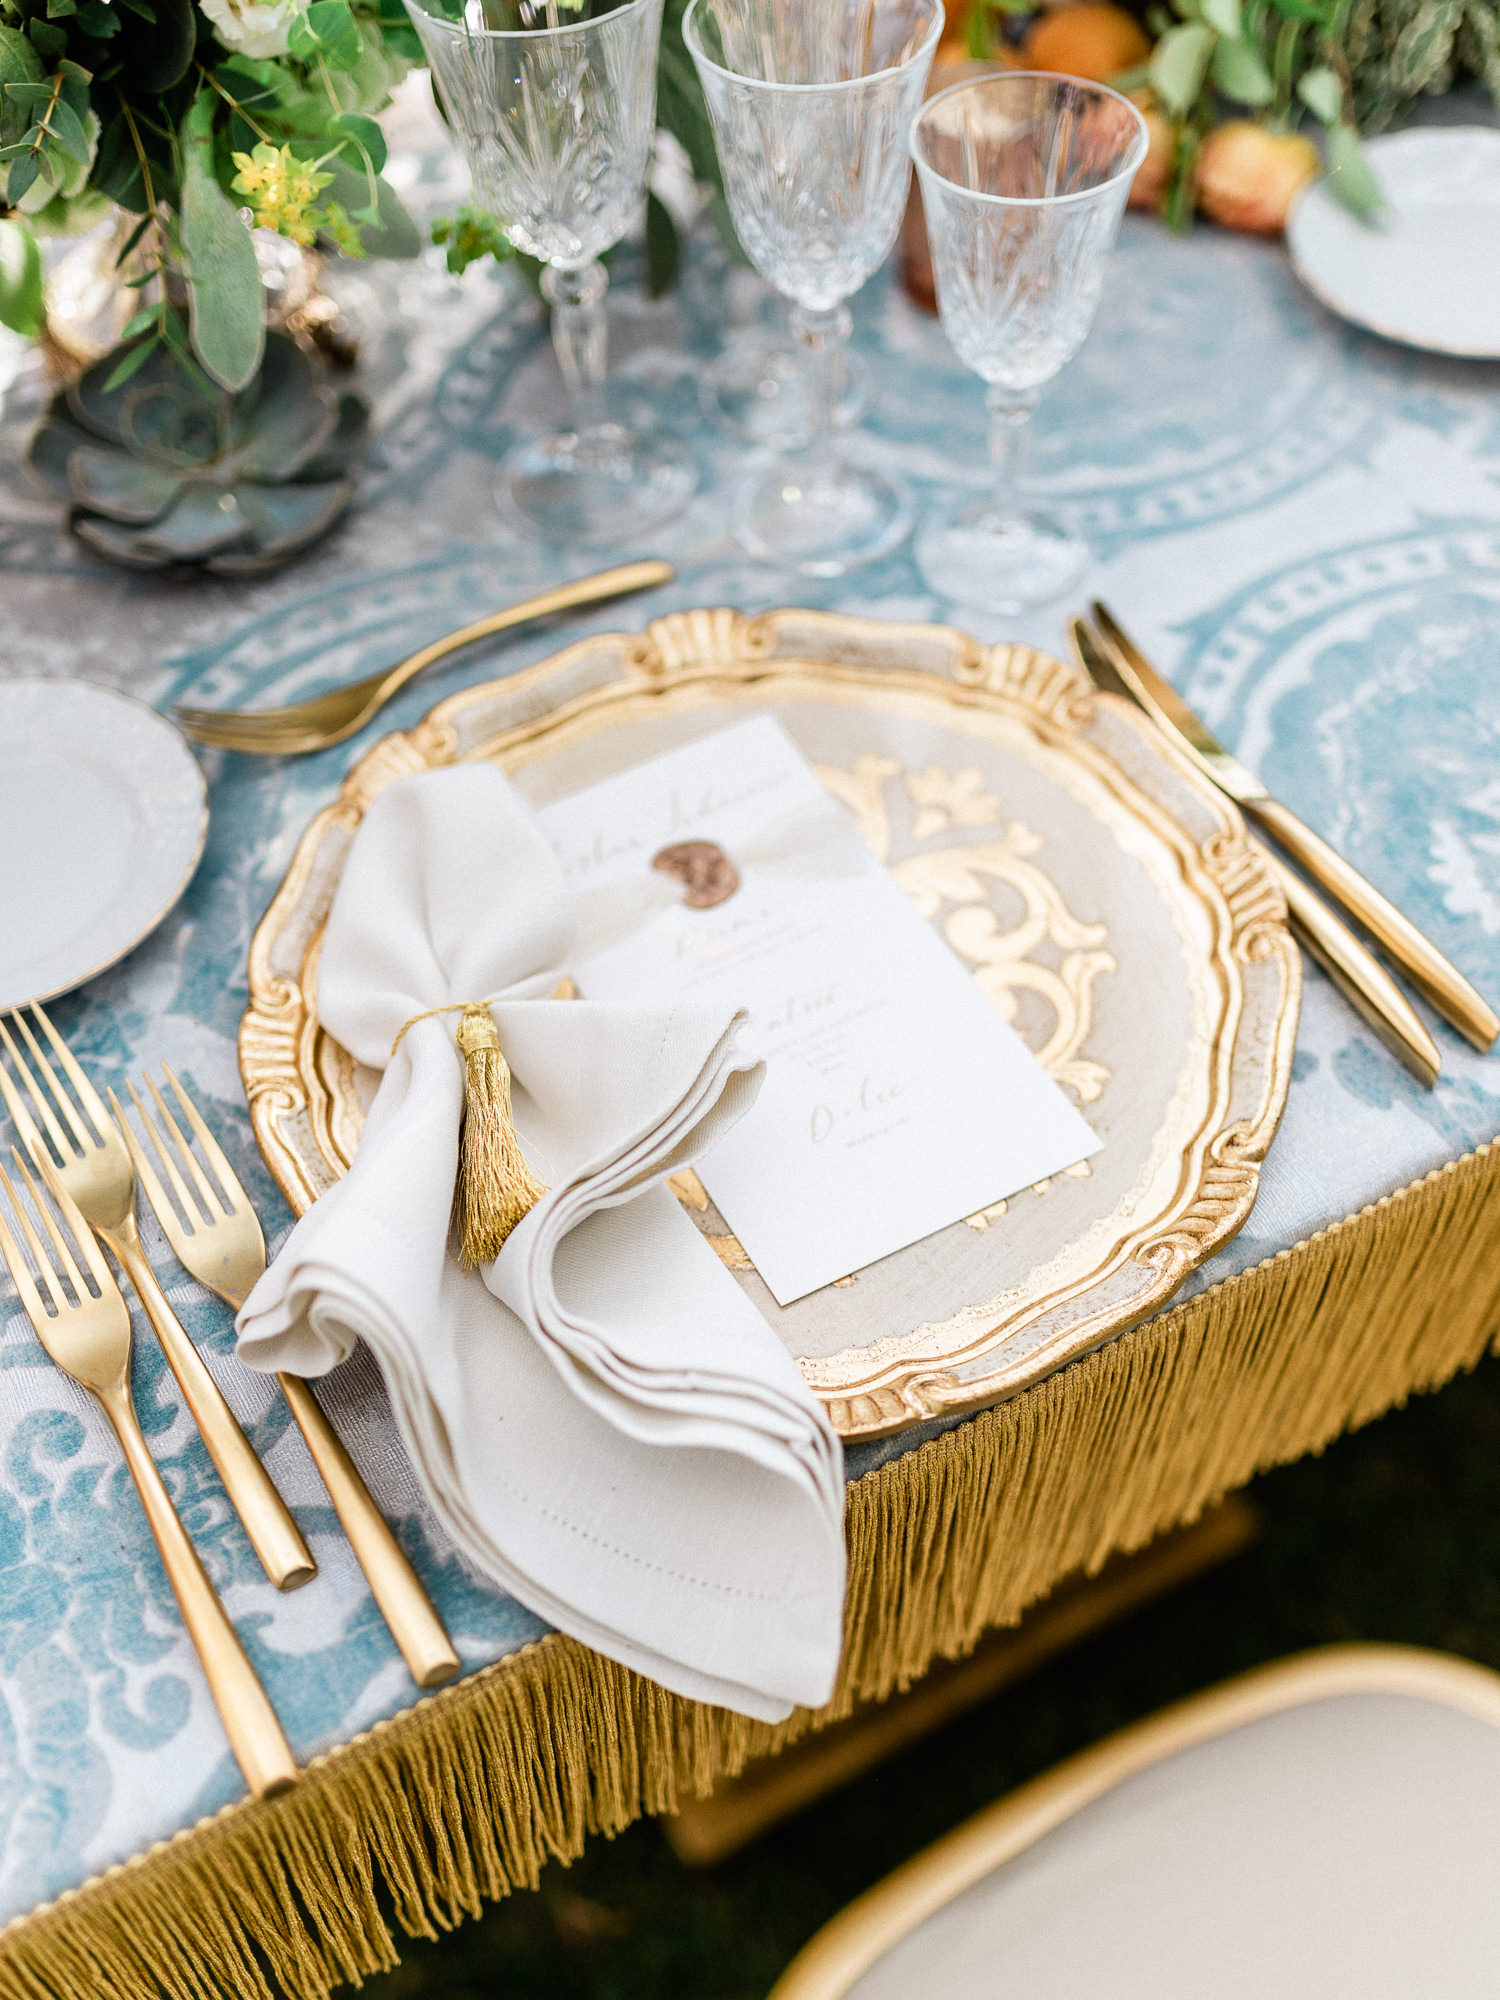 Gold Italian design place settings on blue damask table cloth  - photo by Gianluca Adoviaso Photography